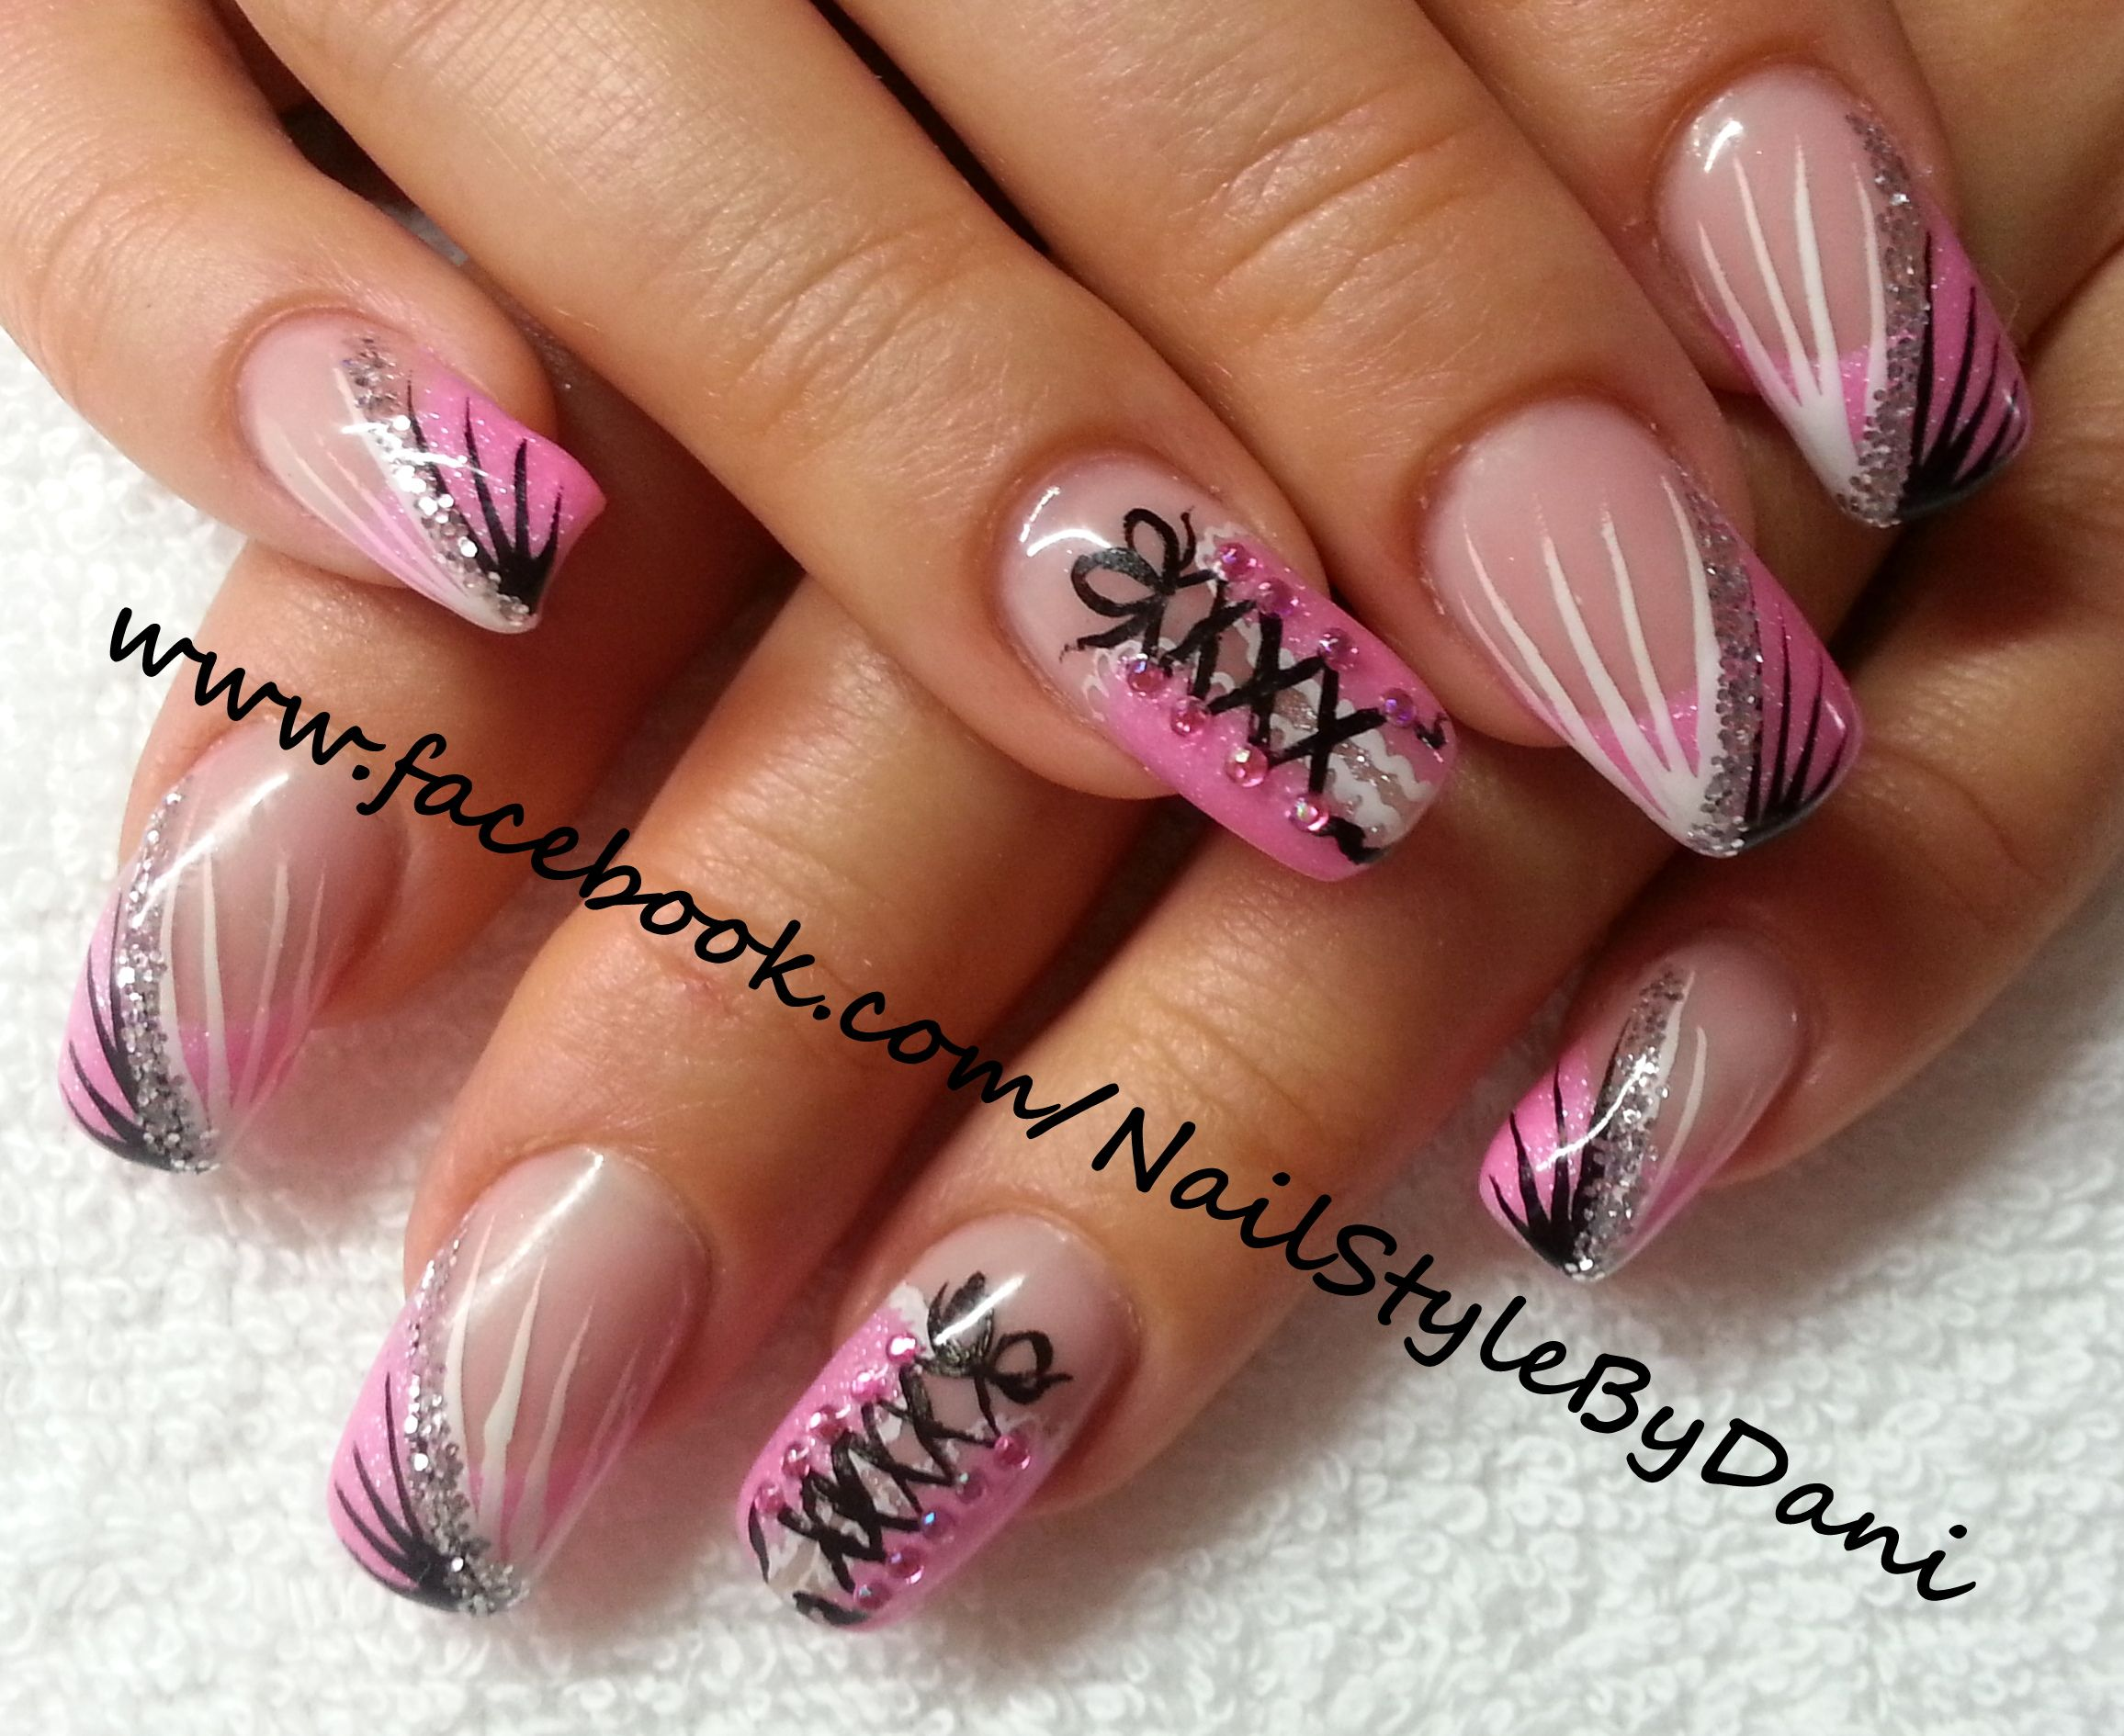 www.facebook.com/NailStyleByDani - inspired by Luminous Nails